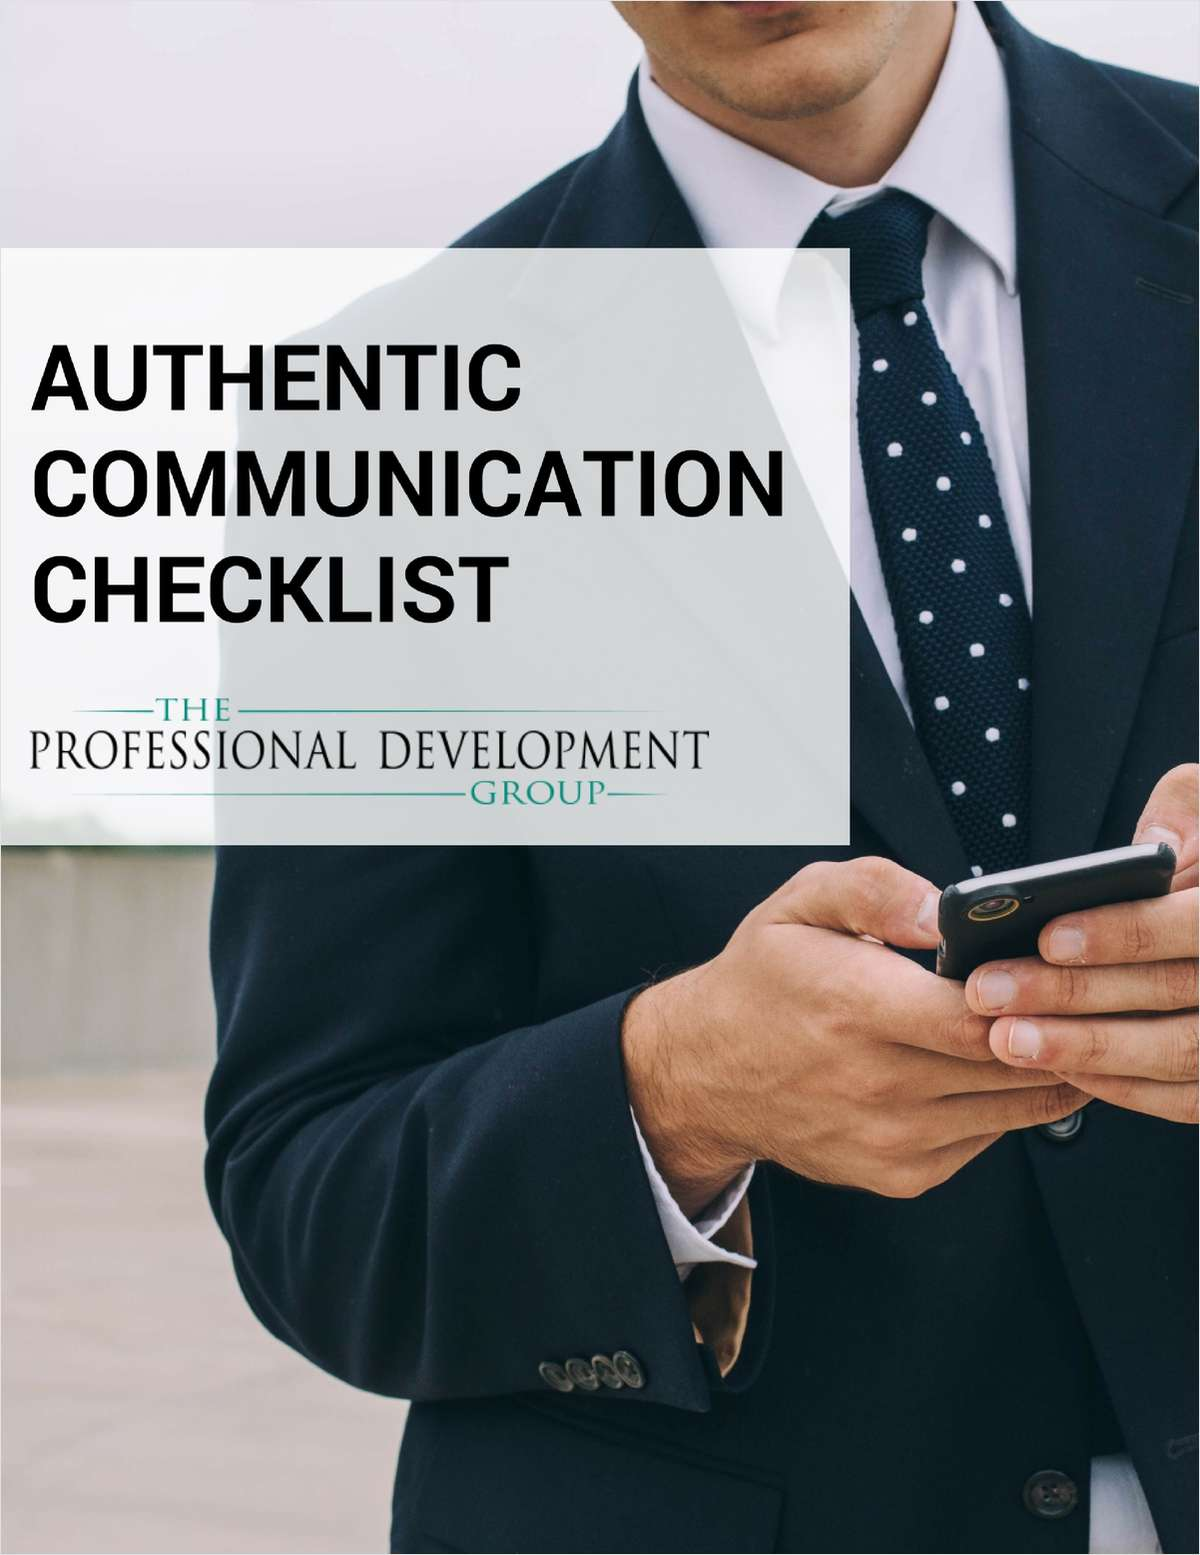 Authentic Communication Checklist